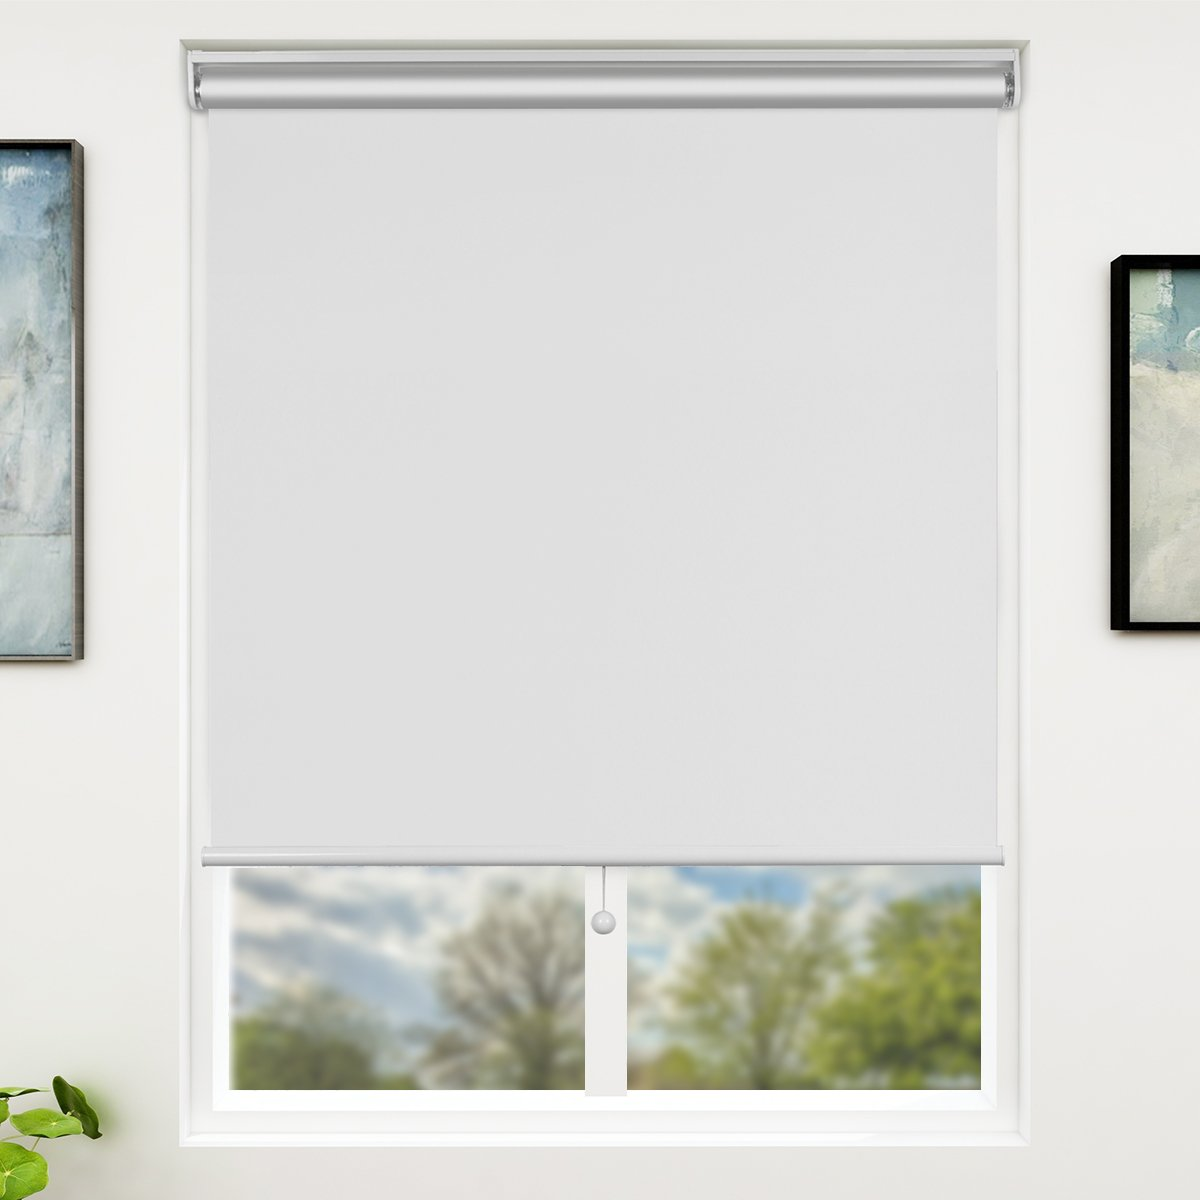 SUNFREE Blackout Window Shades Cordless Window Blinds for Home Office 48'' x 72'', White by SUNFREE